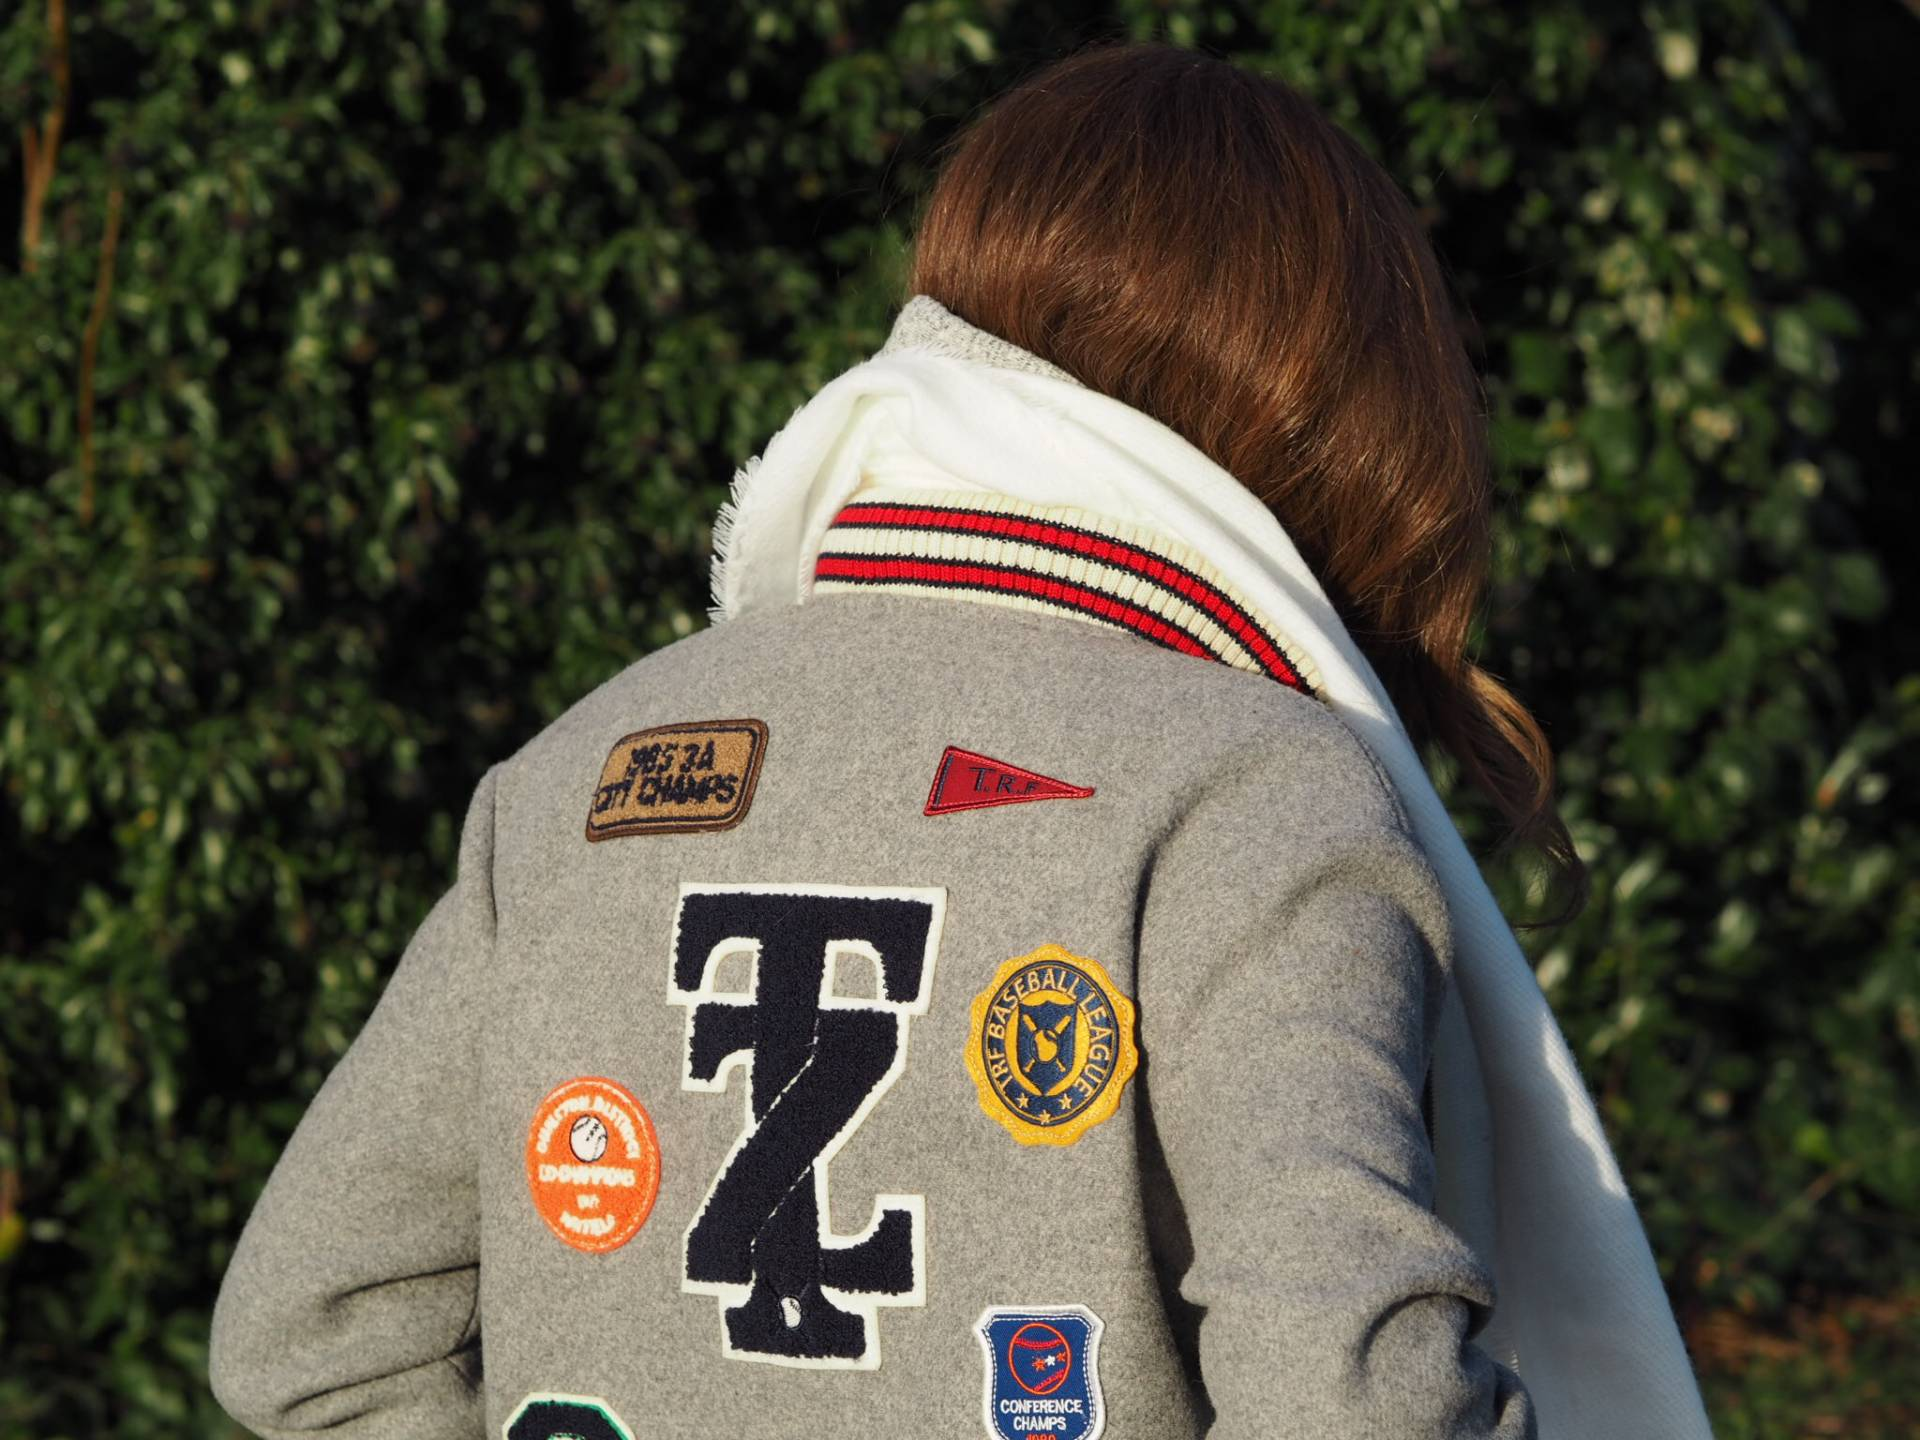 How To Wear A Letterman Jacket | Megan Taylor